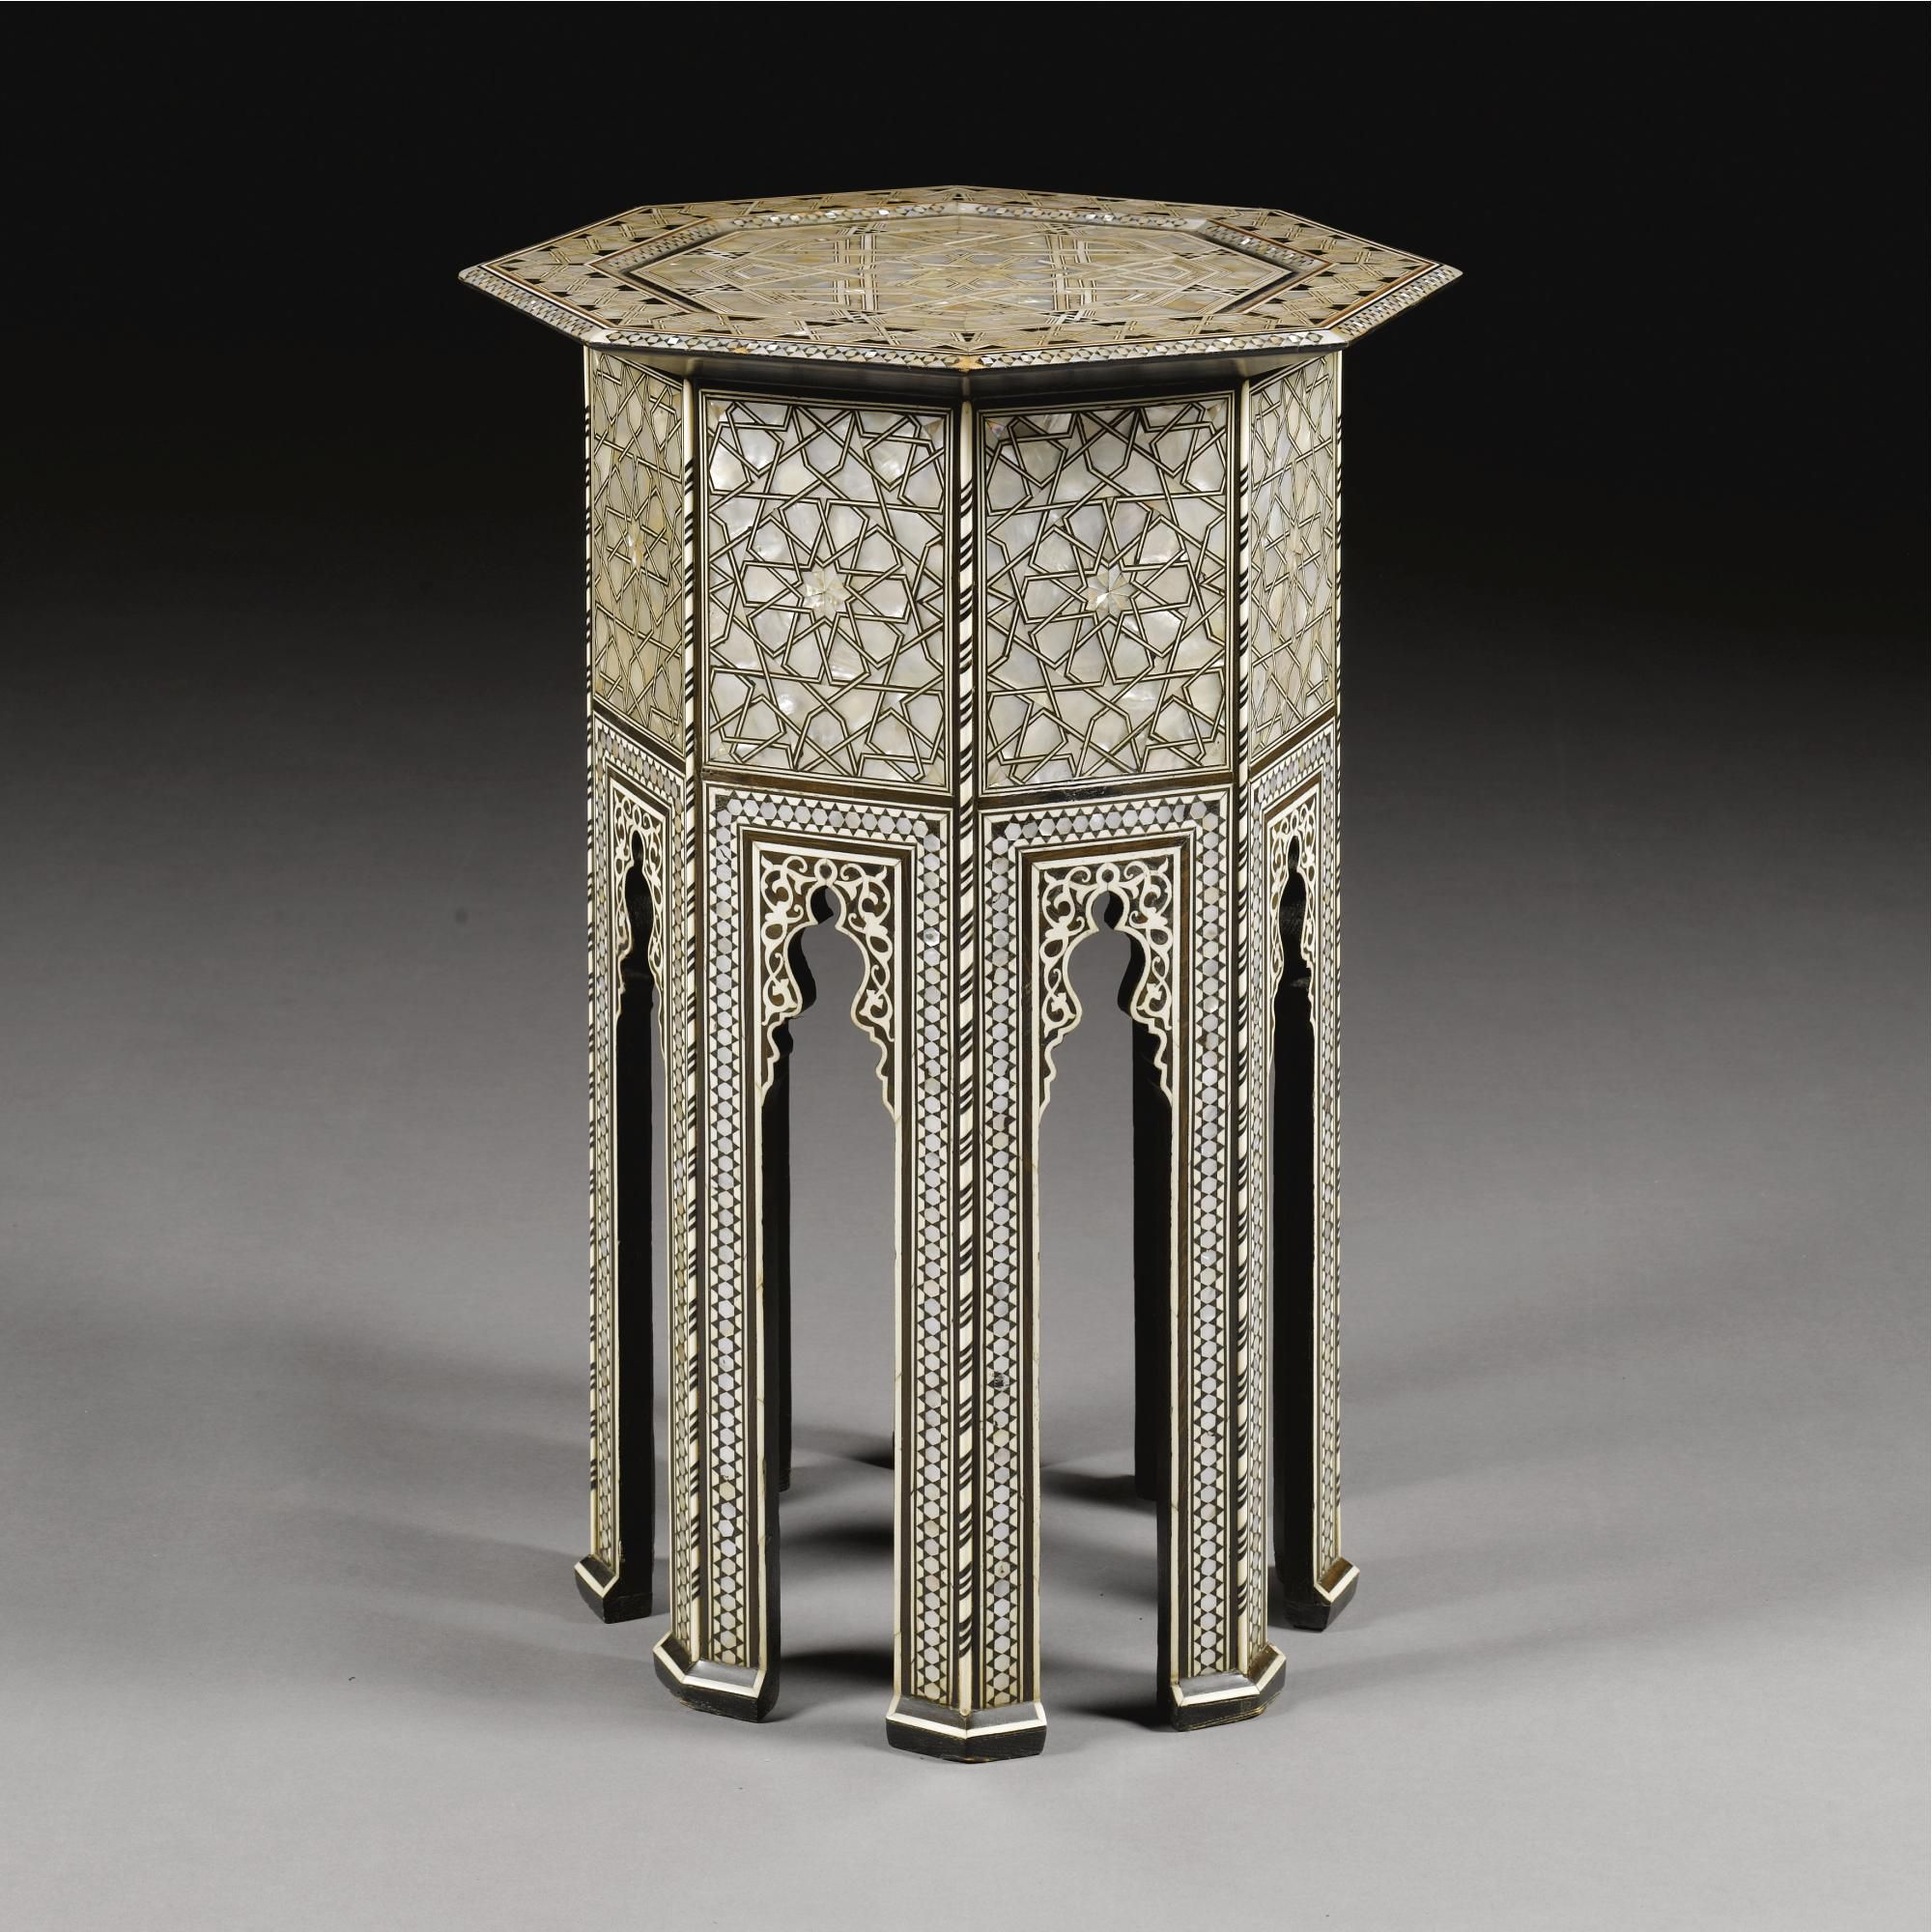 An Ottoman mother of pearl and ebony inlaid octagonal coffee table